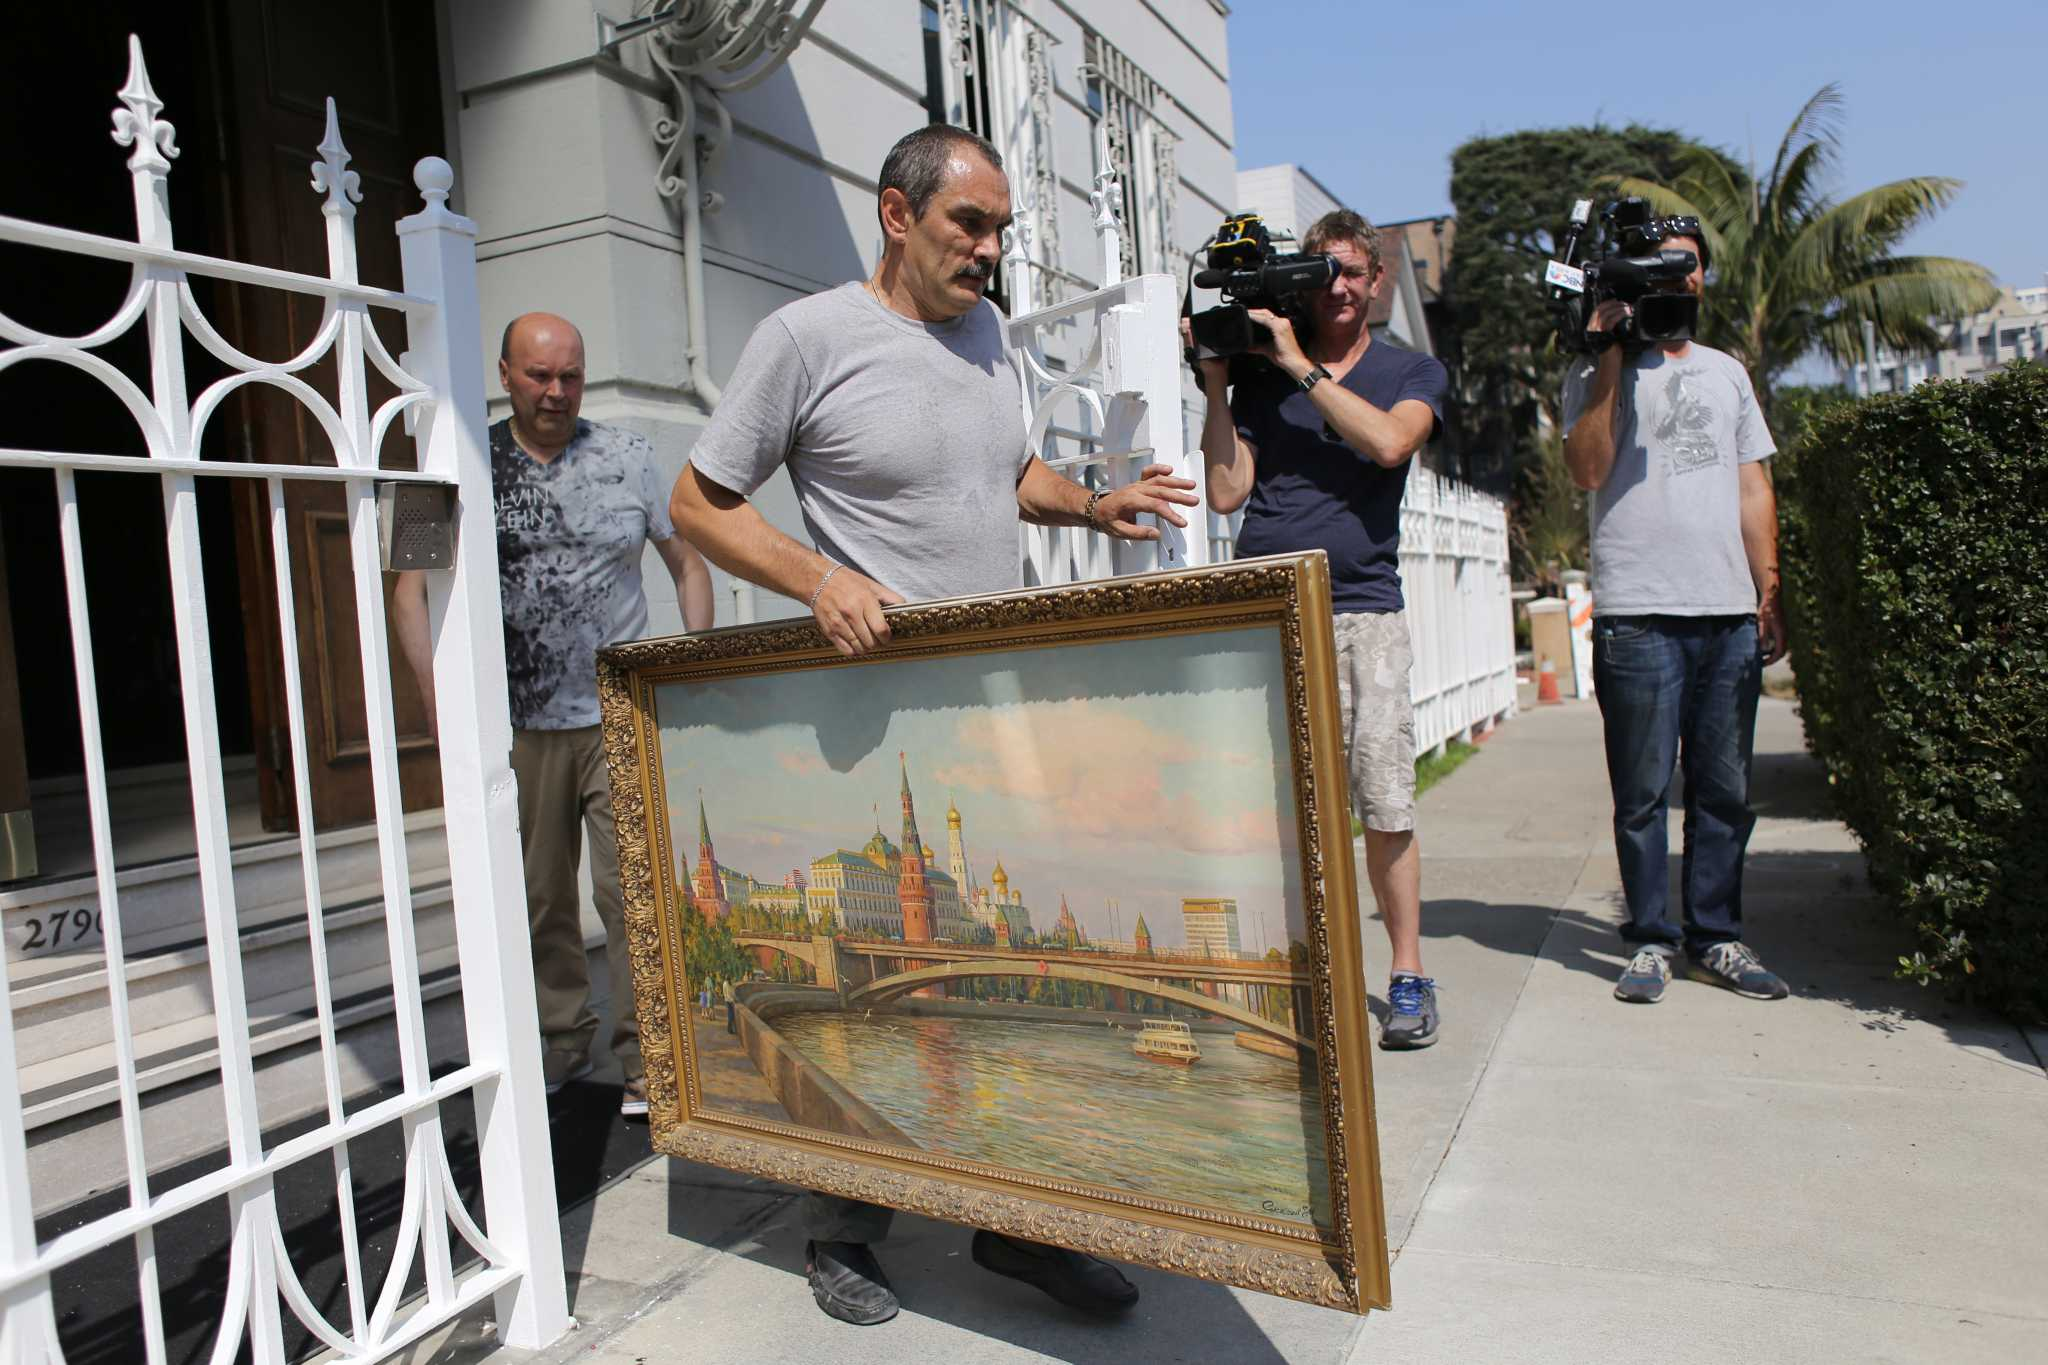 A man carries a painting out of the Russian consulate in San Franicsco, Calif. on Friday, Sept. 1, 2017. (Travis Wesley/Golden Gate Xpress)